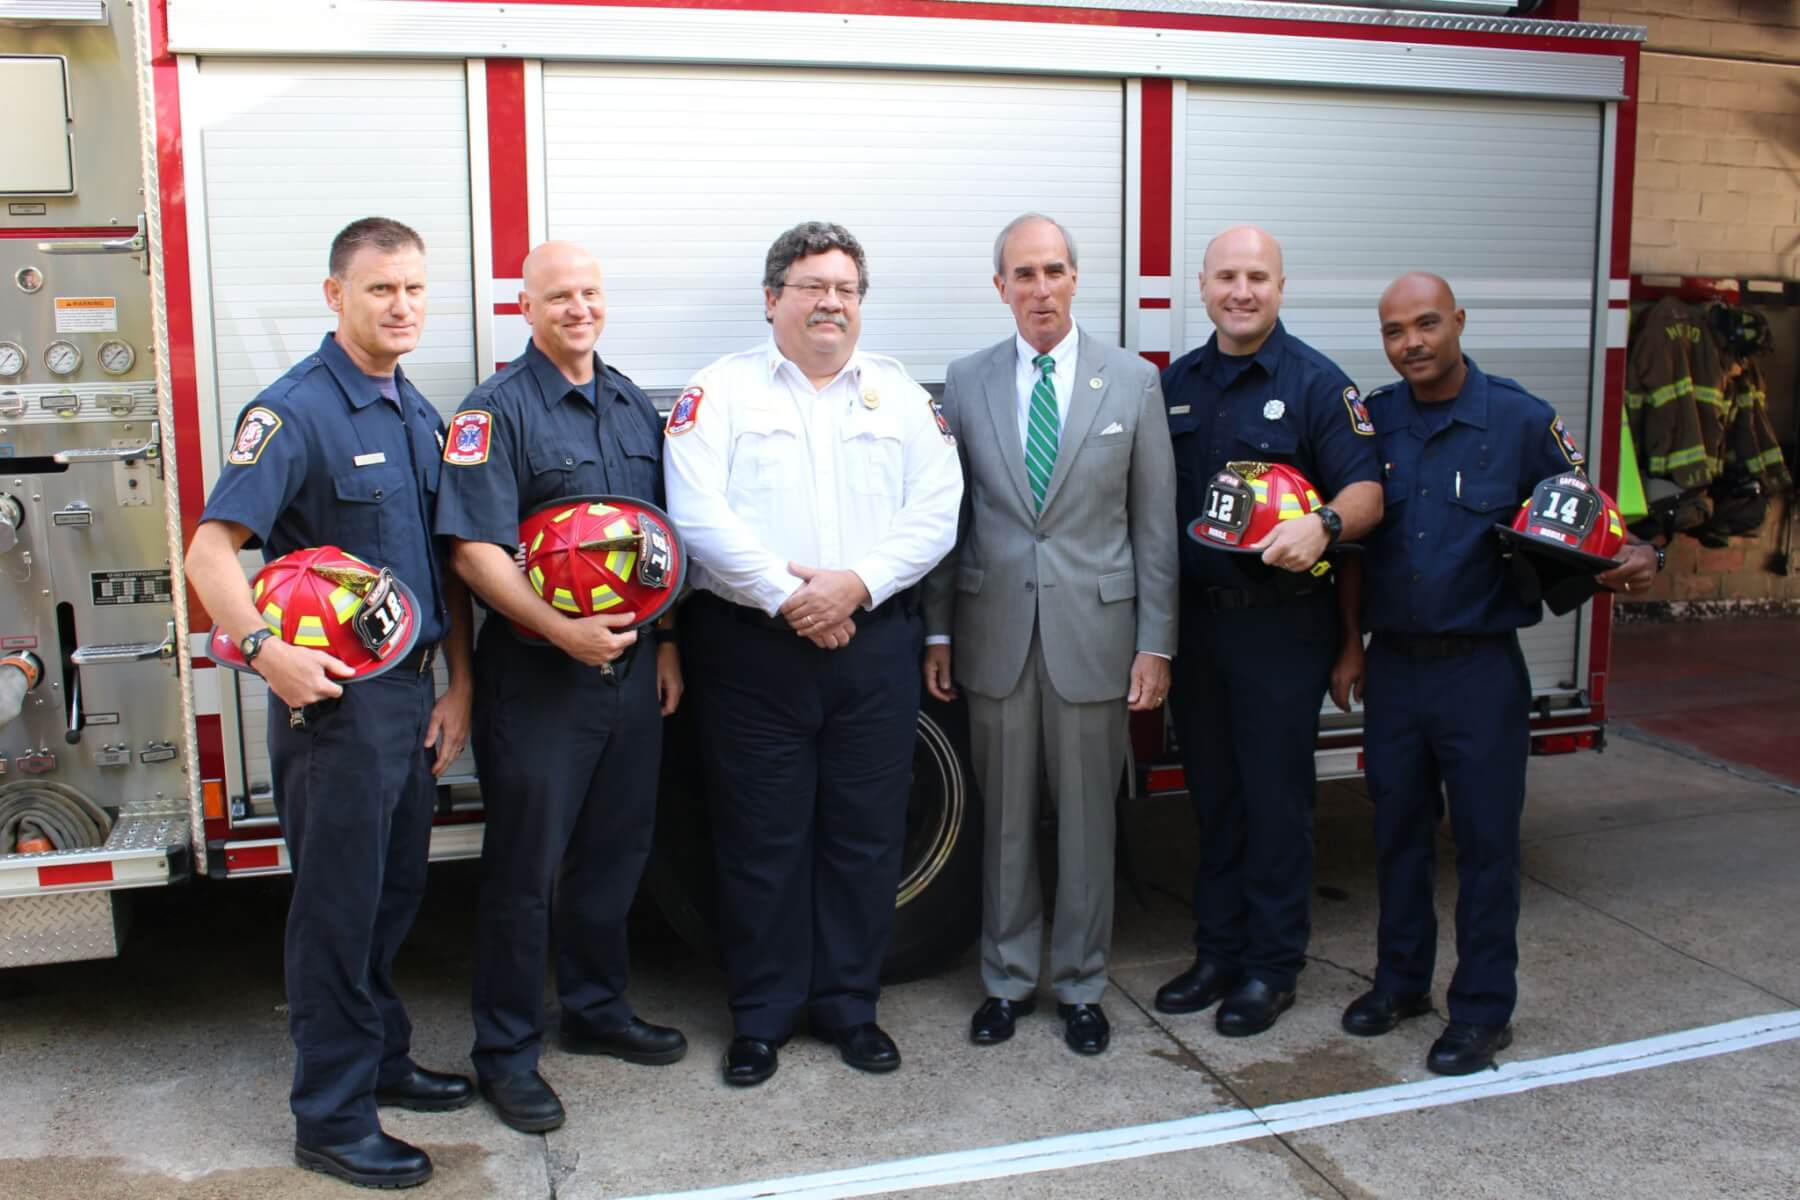 Stimpson's budget proposal now includes firefighter raises